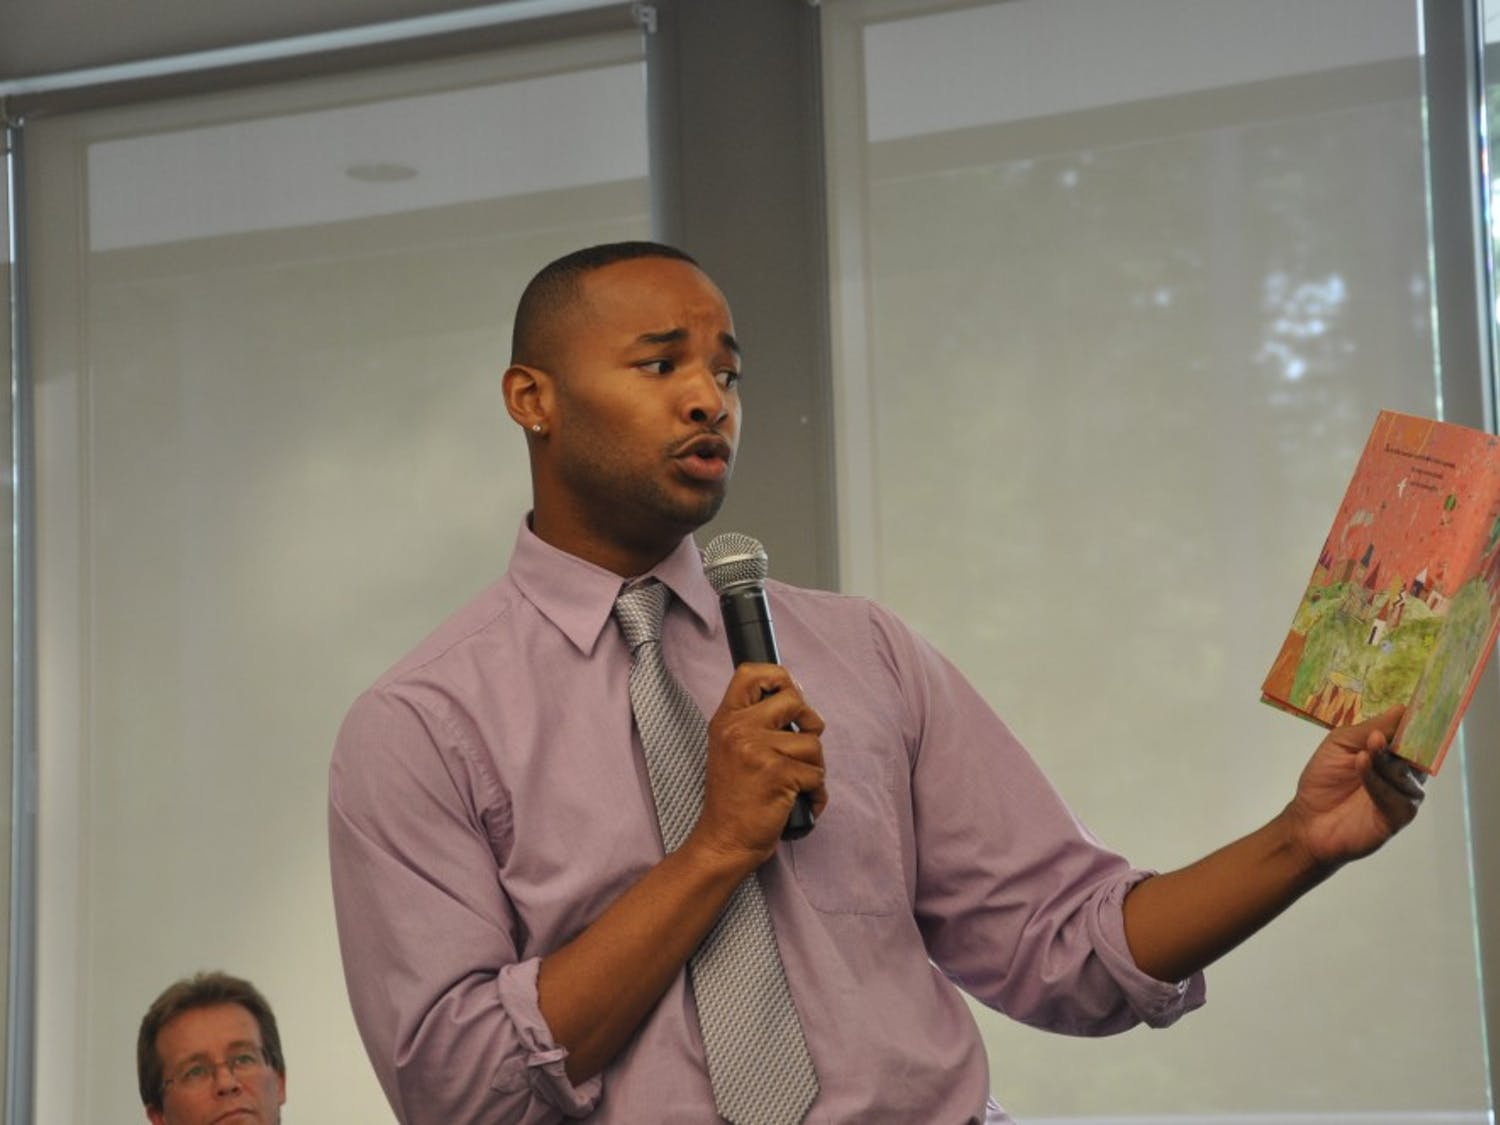 """Omar Currie, a former teacher at Efland Cheeks Elementary school, reads from children's book""""King and King"""" at the Chapel Hill Public Library. Currie resigned from the school after a controversy emerged over Currie reading the book, which features amarriage between gay characters, to his third-grade class."""